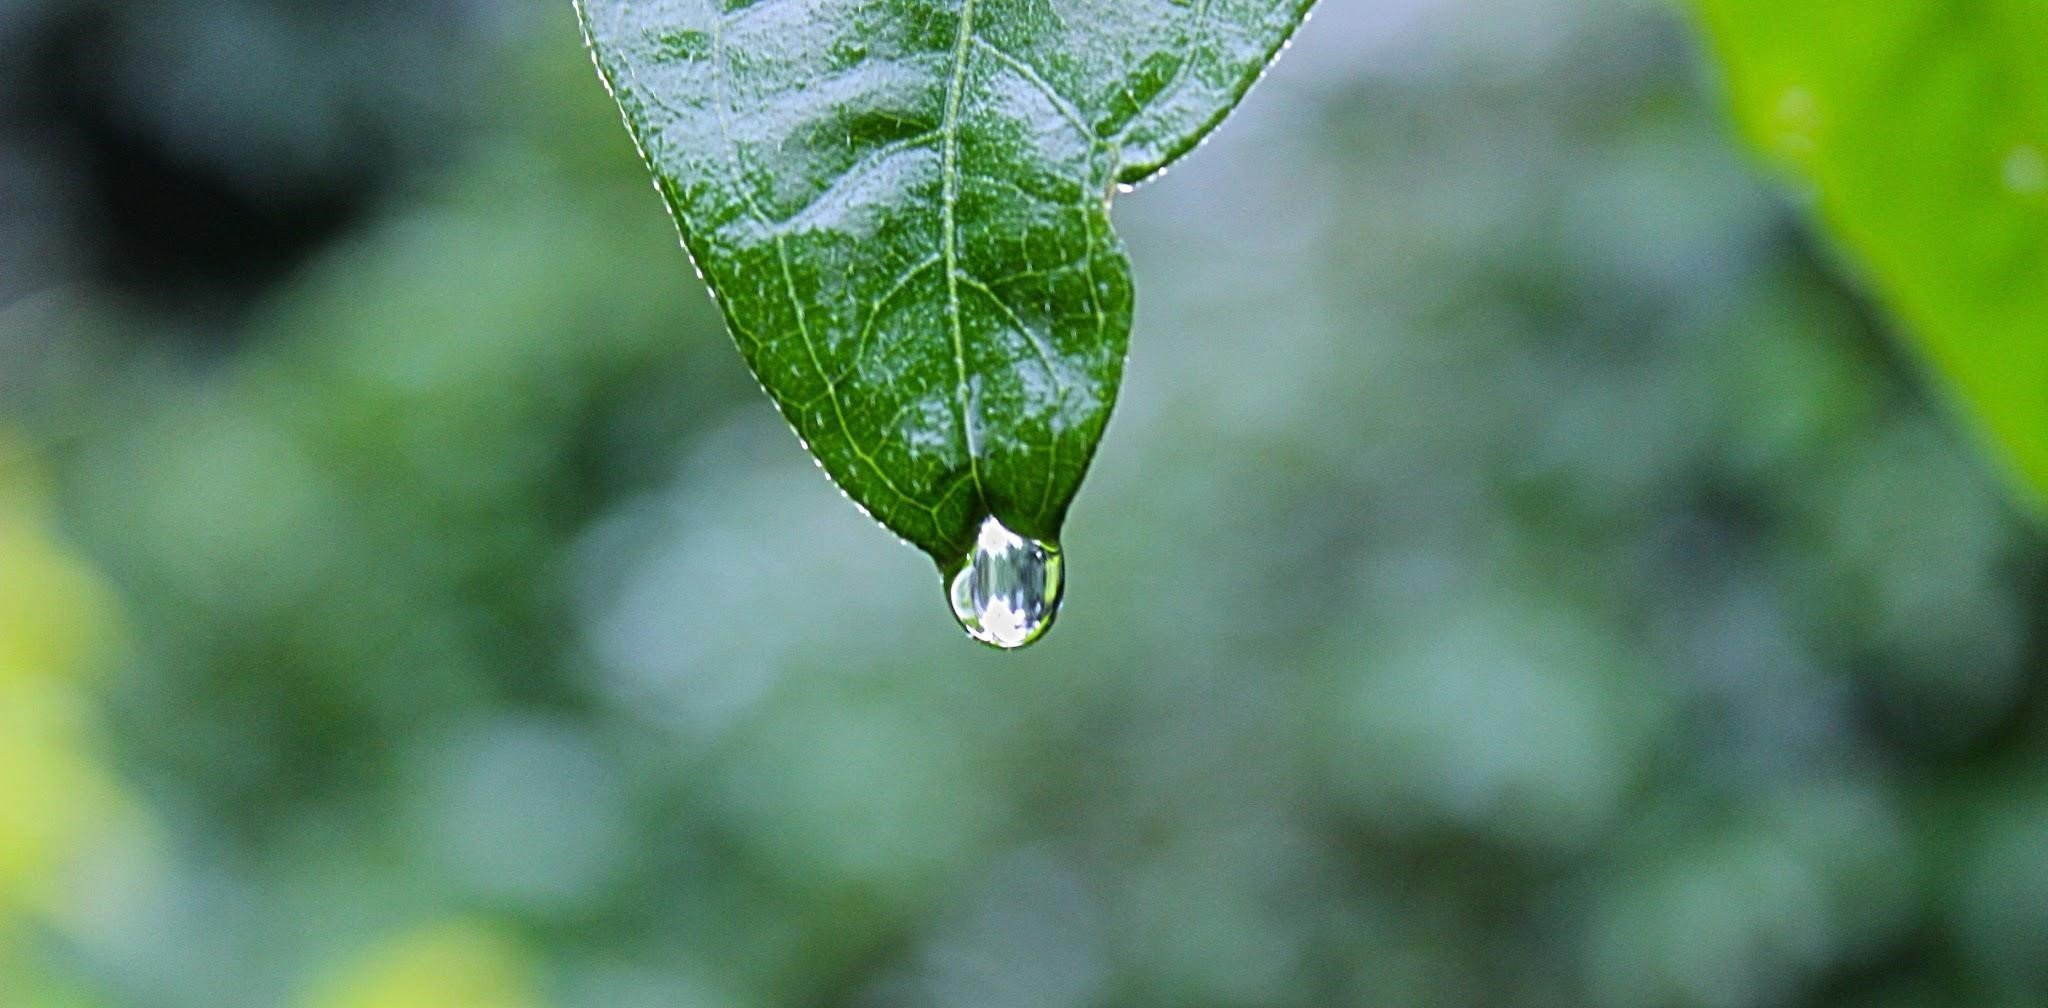 Green leaf with a drip of water at its tip.